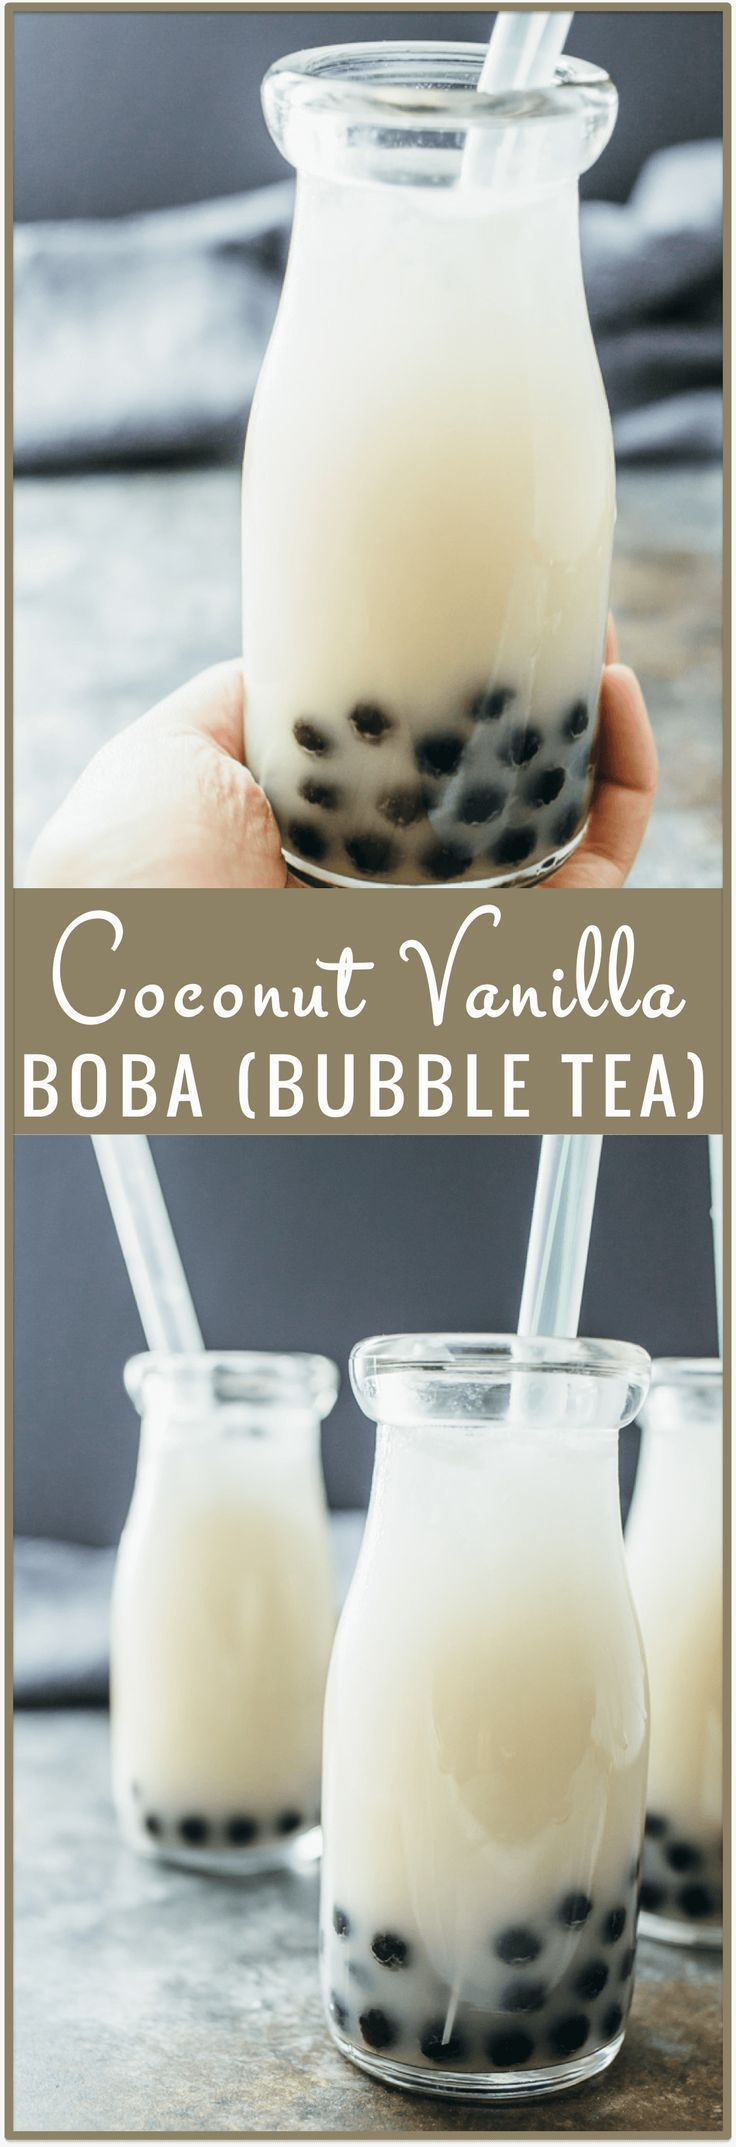 Coconut vanilla boba (bubble tea) - Ever wonder how to make boba (bubble tea) at home? This recipe shows you how to make boba with coconut and vanilla flavors using home-cooked tapioca pearls! You dont need many supplies/ingredients to end up with this v